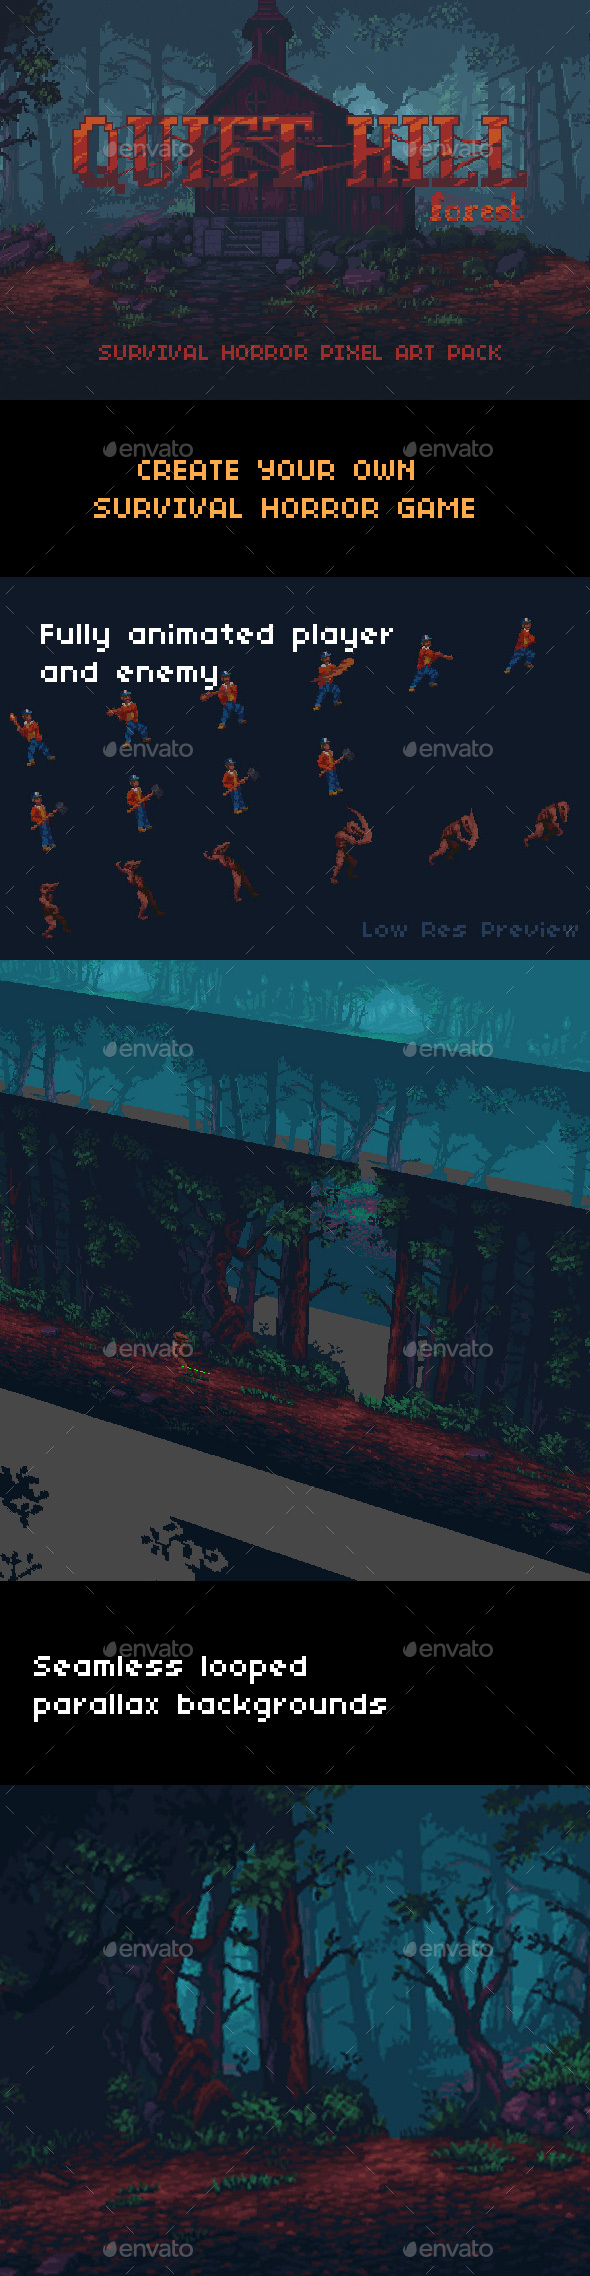 GraphicRiver Quiet Hill Forest Pack 20535010